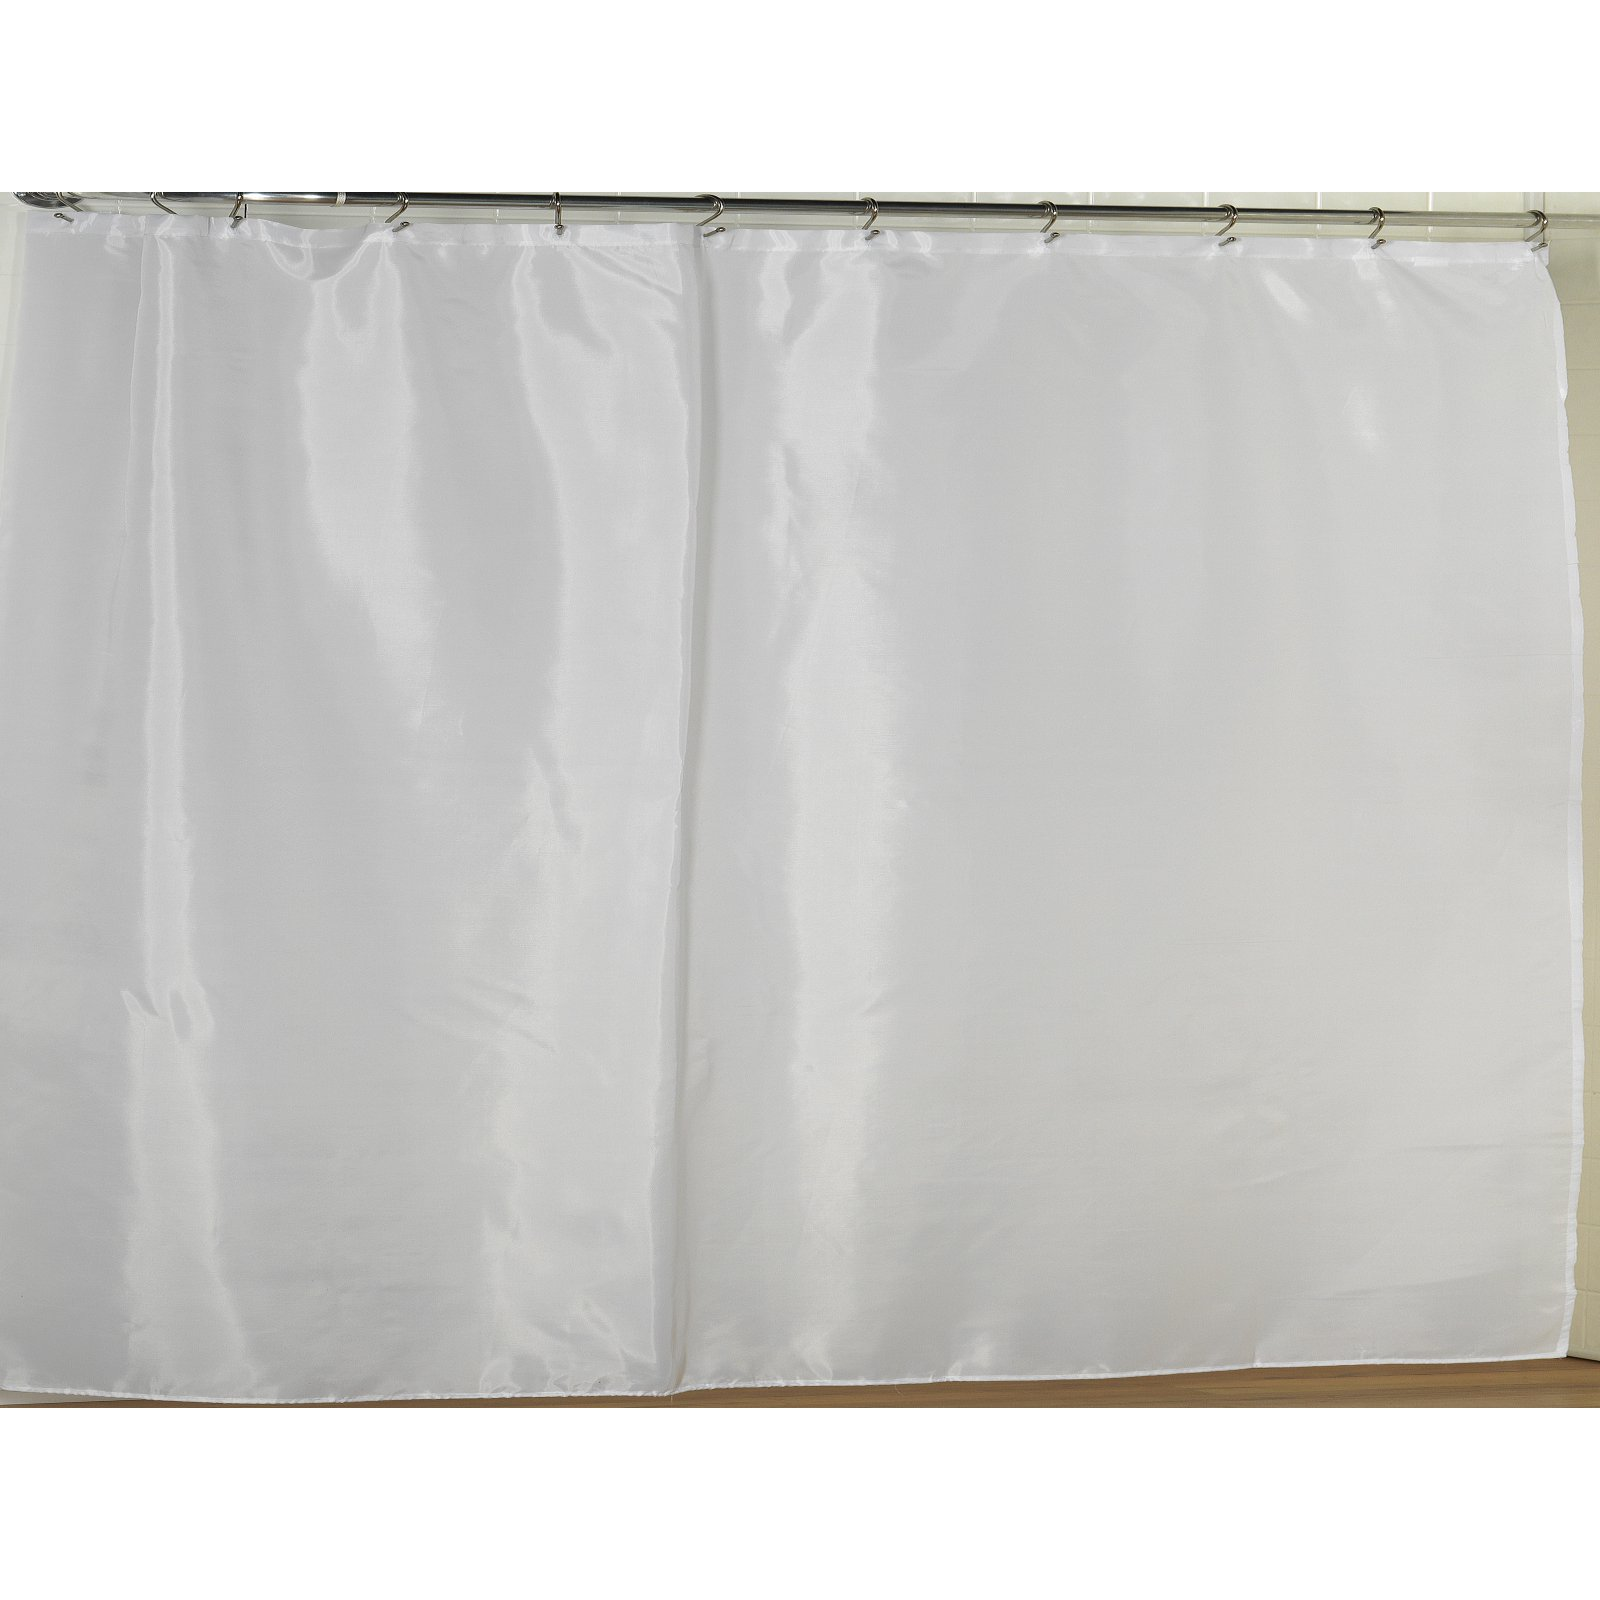 108 Long Shower Curtain Extra Wide Polyester Fabric Shower Curtain Liner In White